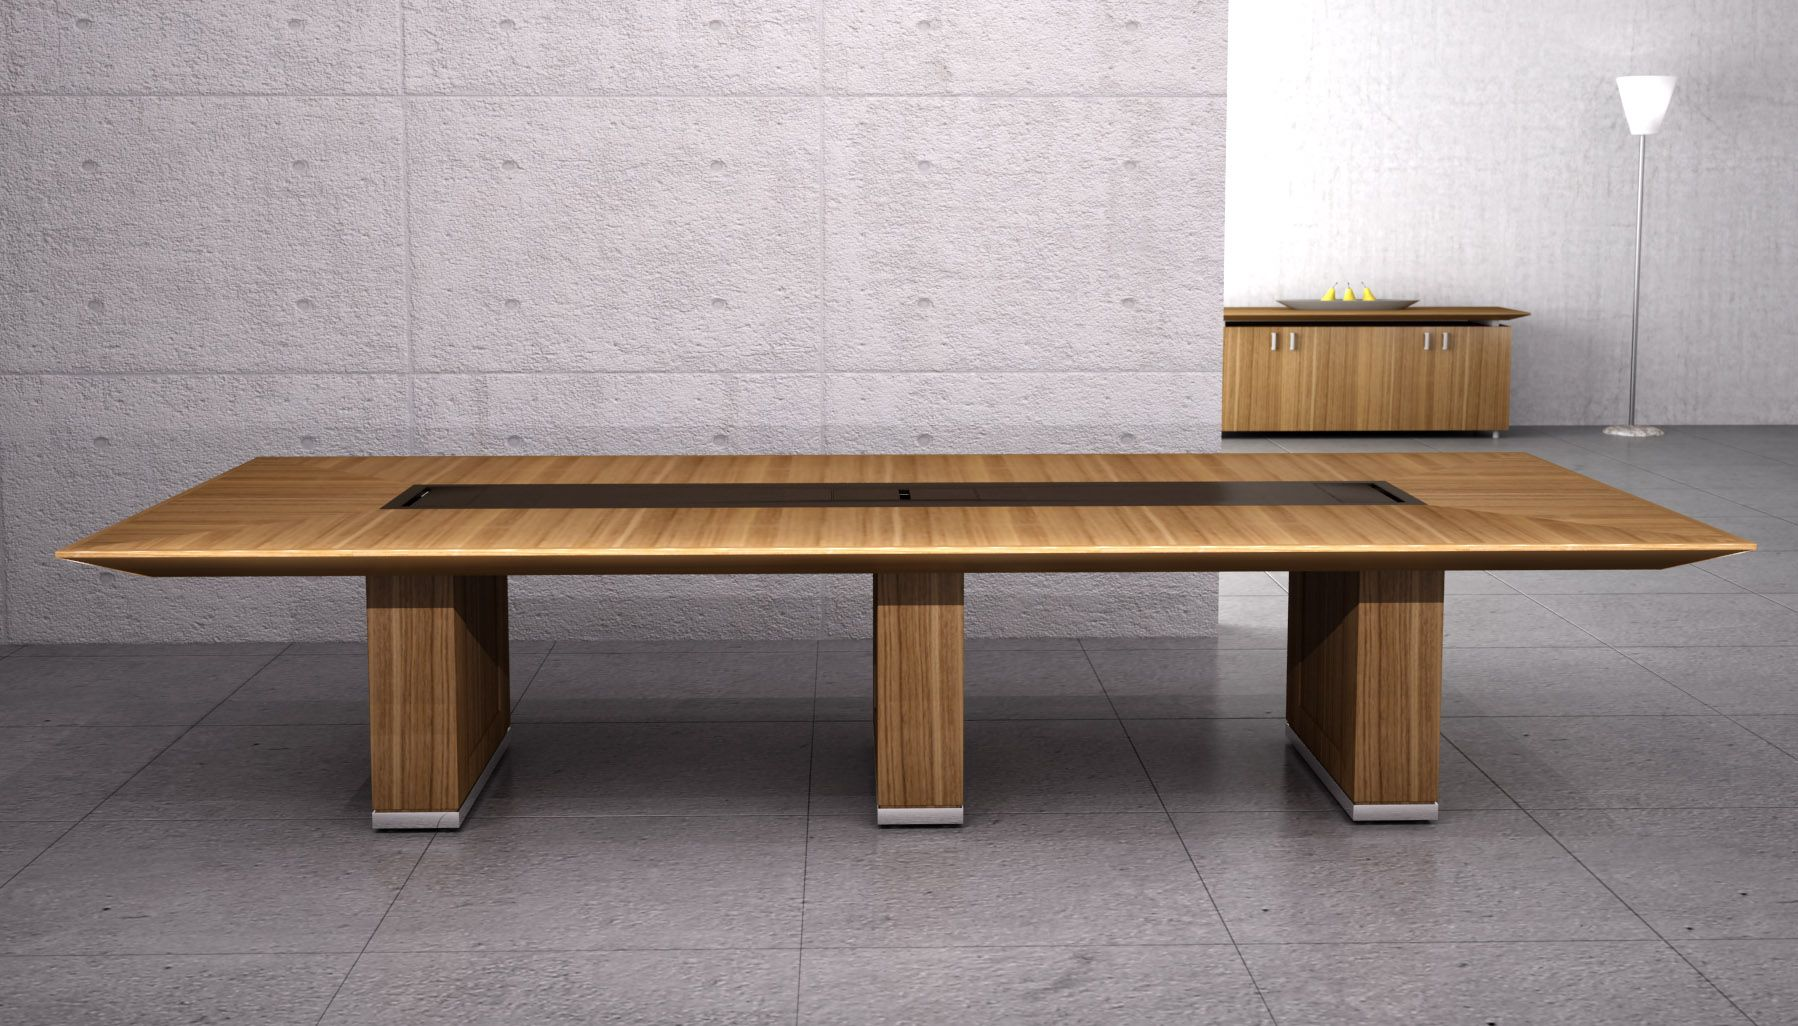 office conference table design. Various Awesome Conference Table Design: Cool Bench Style Low Profile Modern Wooden Design Ideas ~ Gtrinity.com Furniture Inspiration Office O